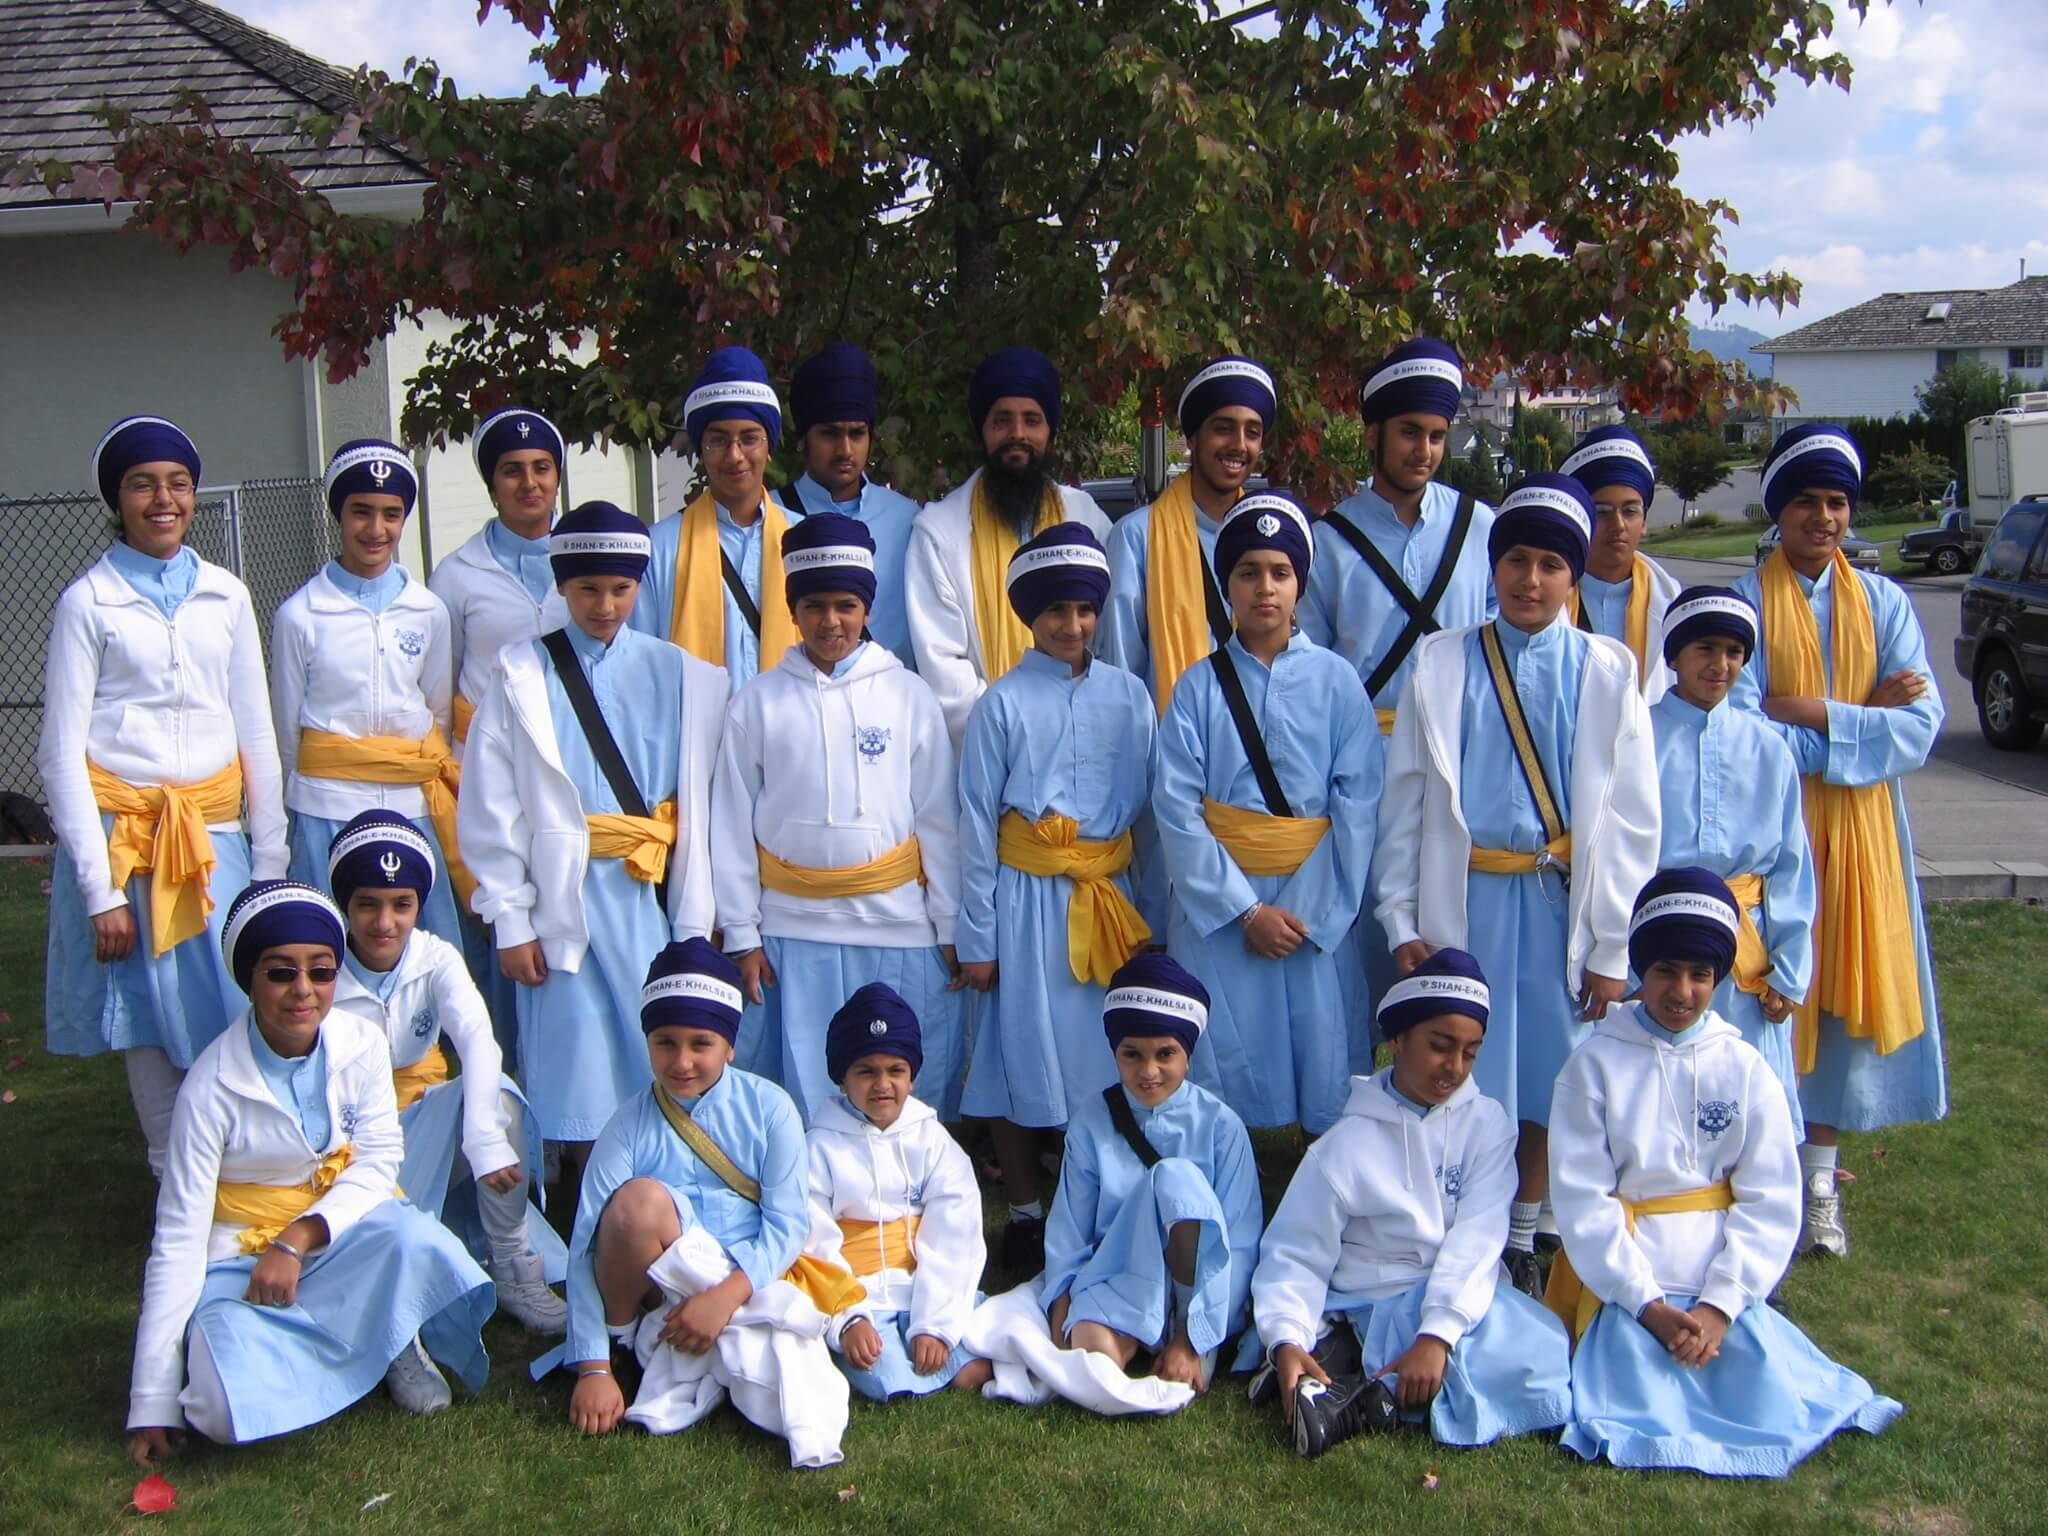 A Gatka (sikh martial arts) team posing for a group picture